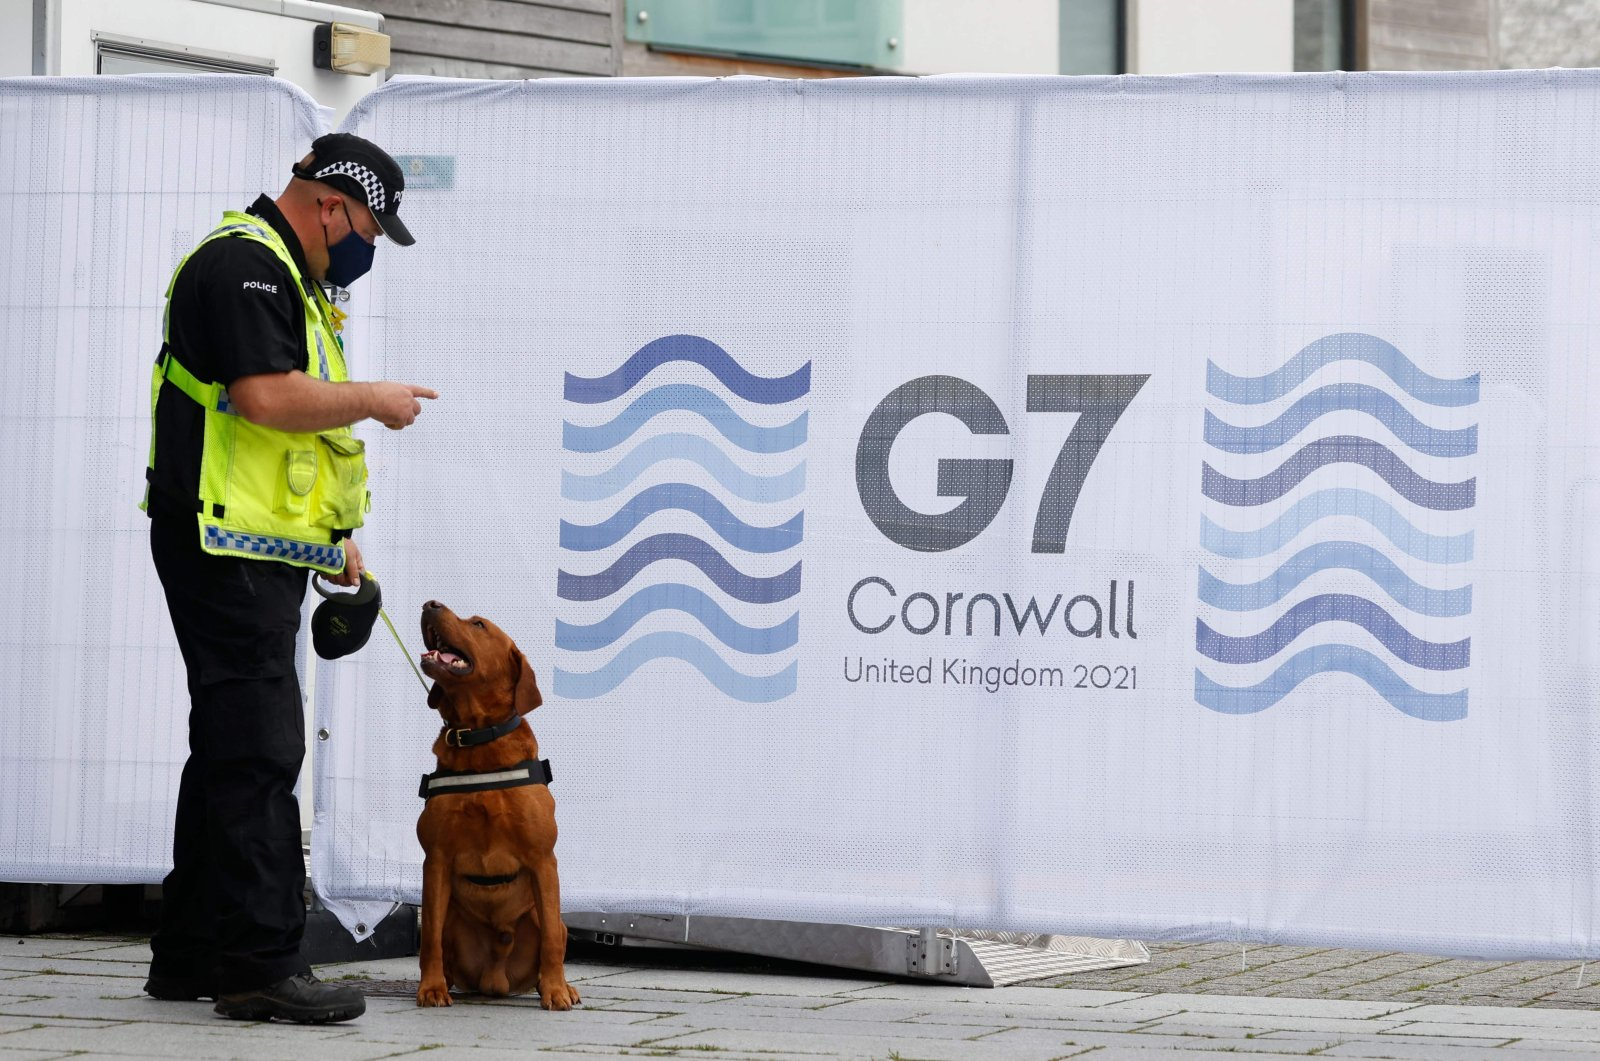 A police sniffer dog patrols the G-7 media center in Falmouth, Cornwall, U.K., on June 10, 2021, (AFP Photo)